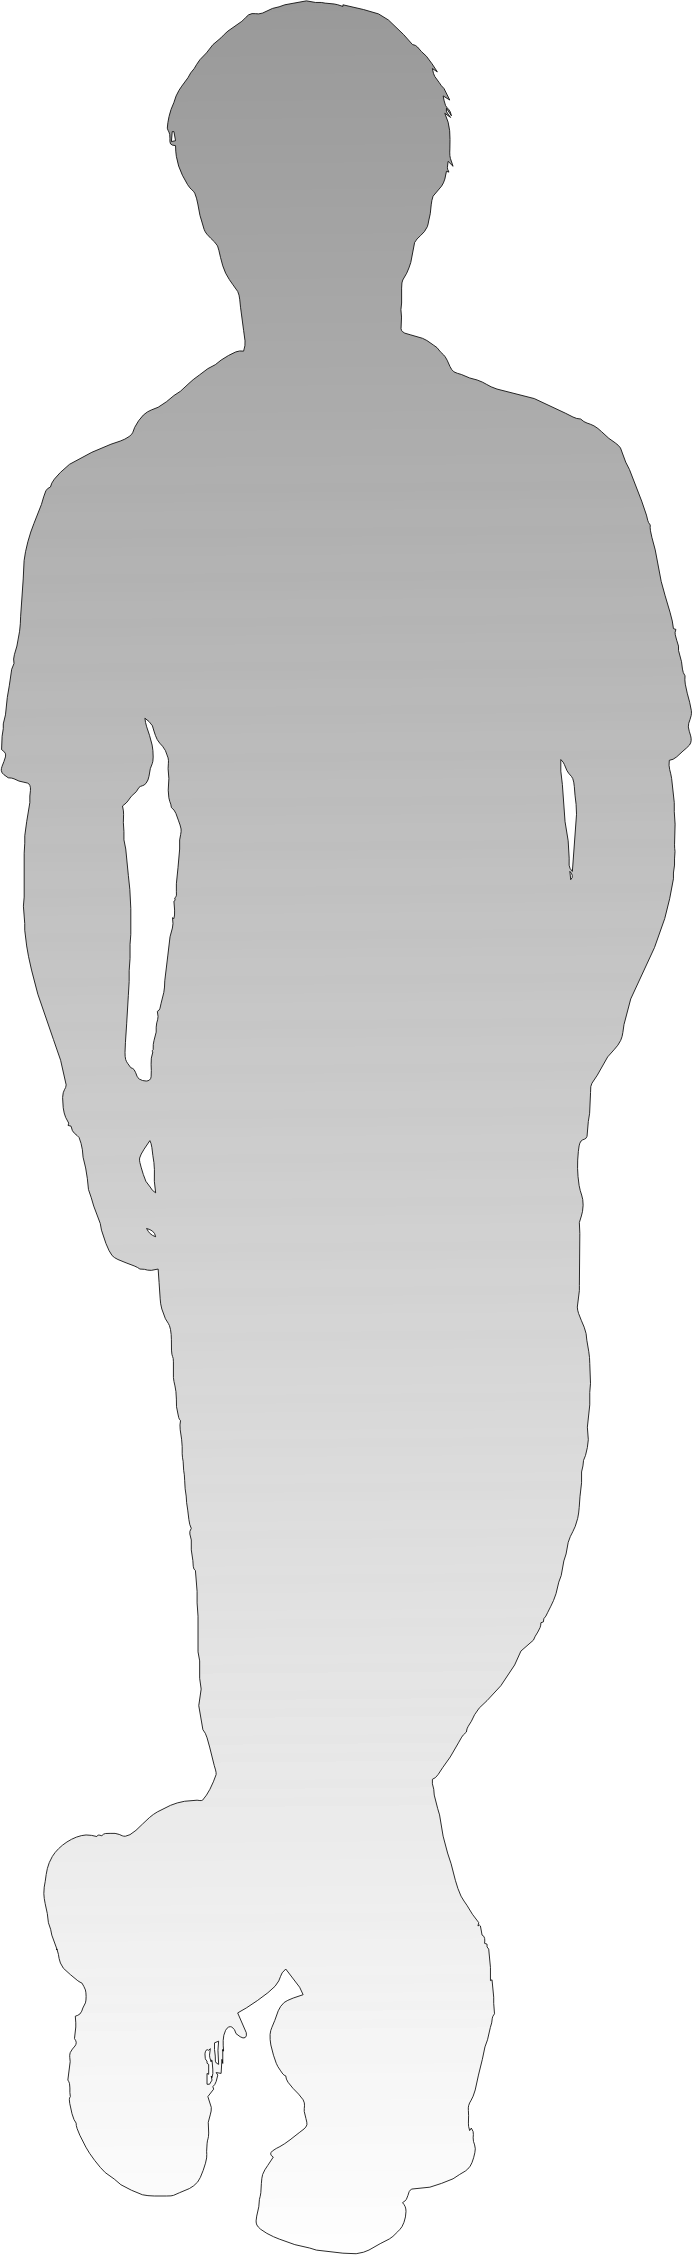 shadow of person - standing leg cross and put hands in the pockets by thinklogically